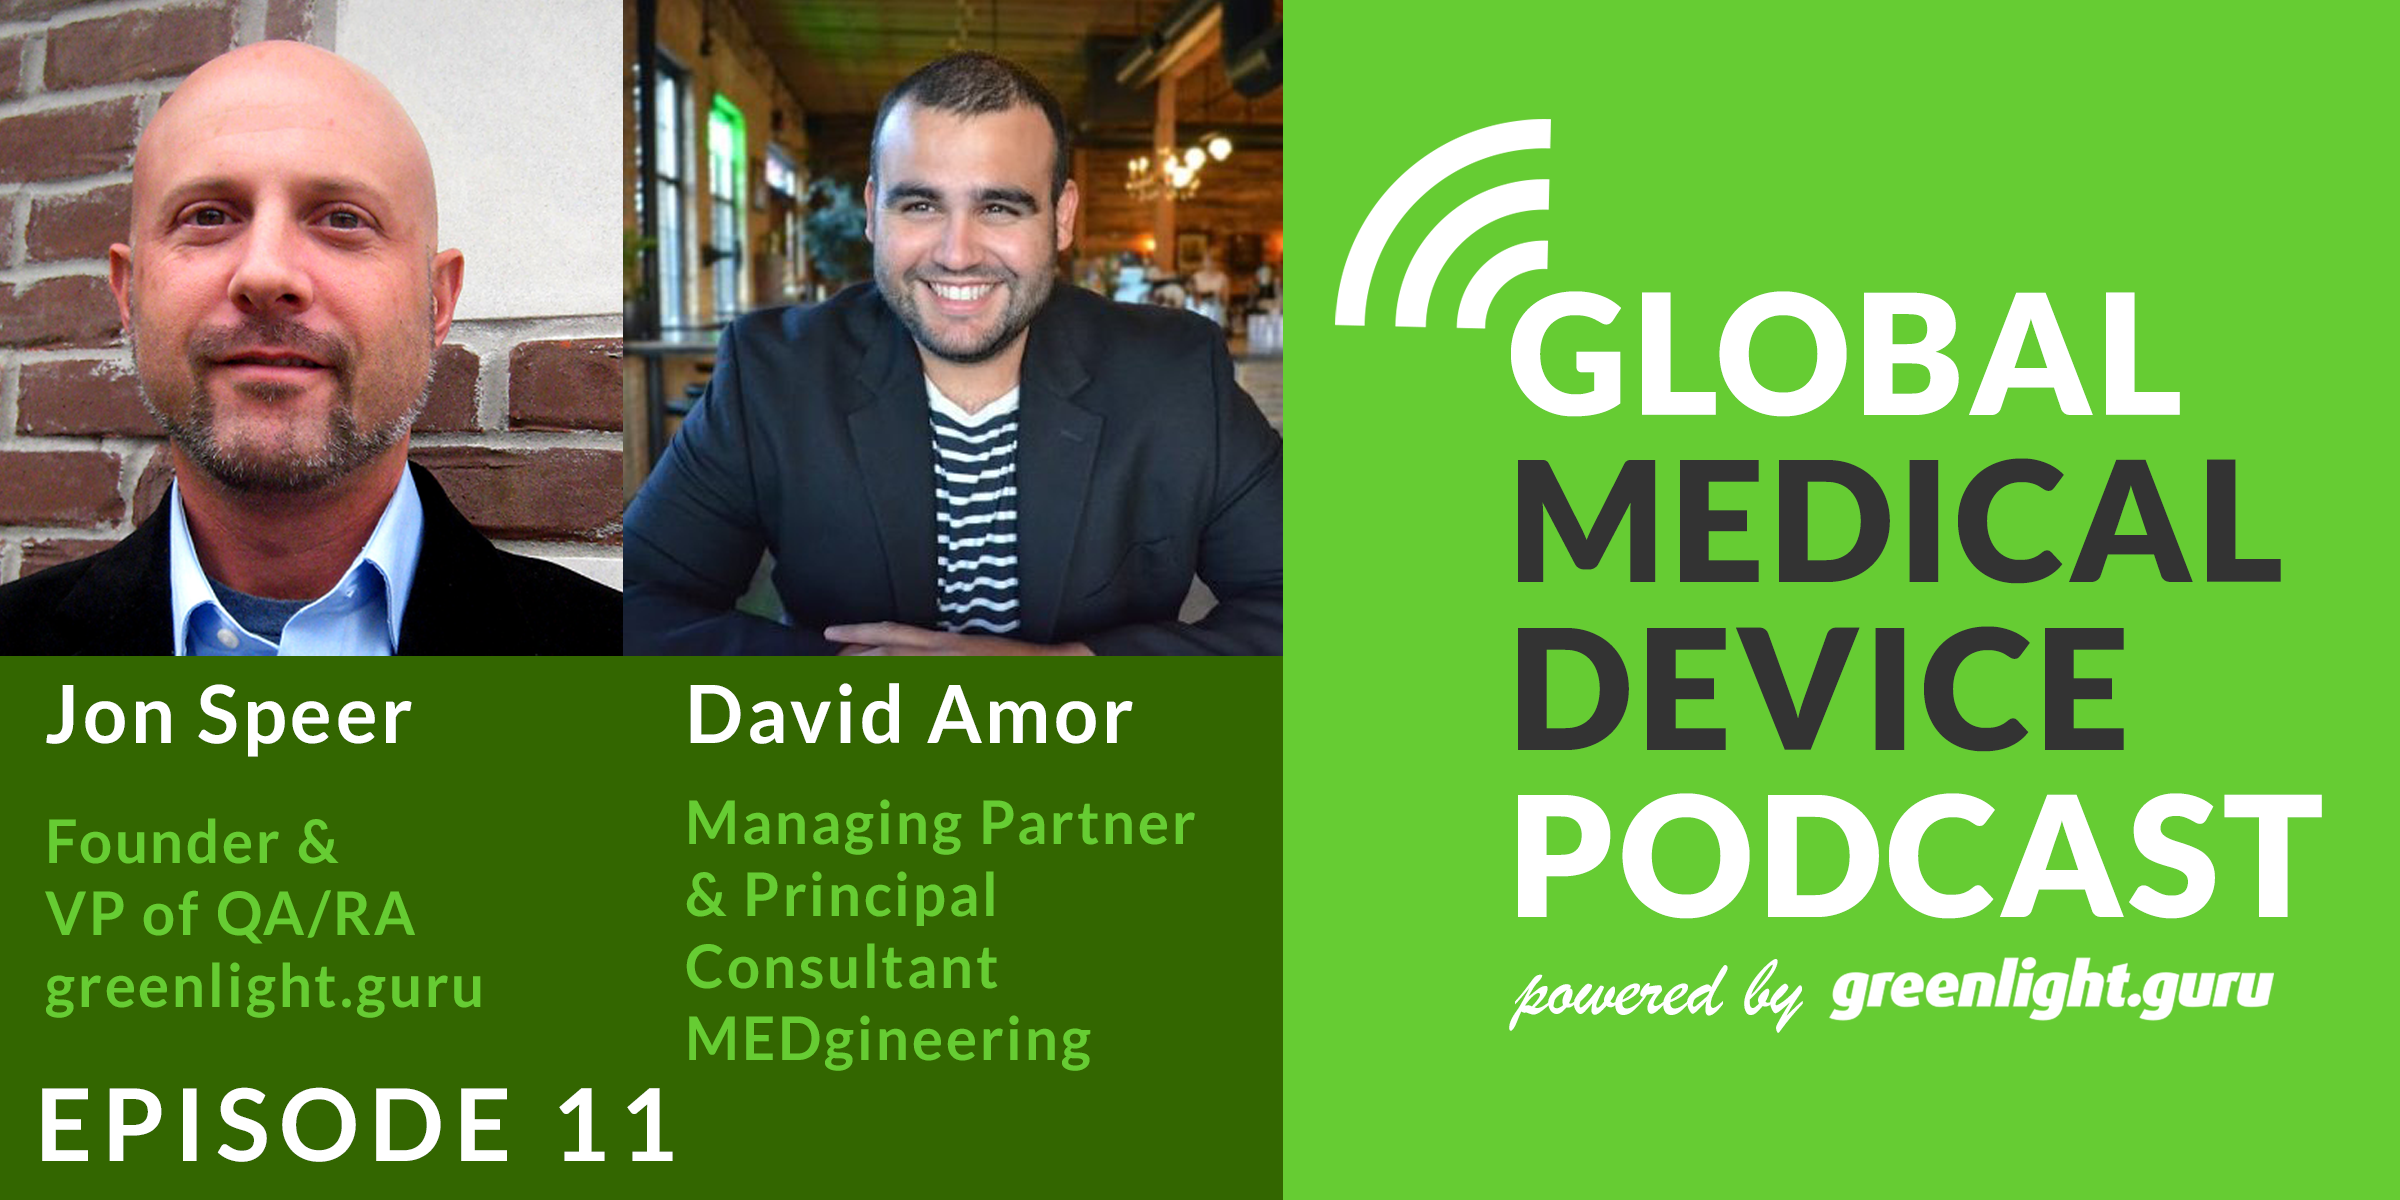 david_amor_global_medical_device_podcast